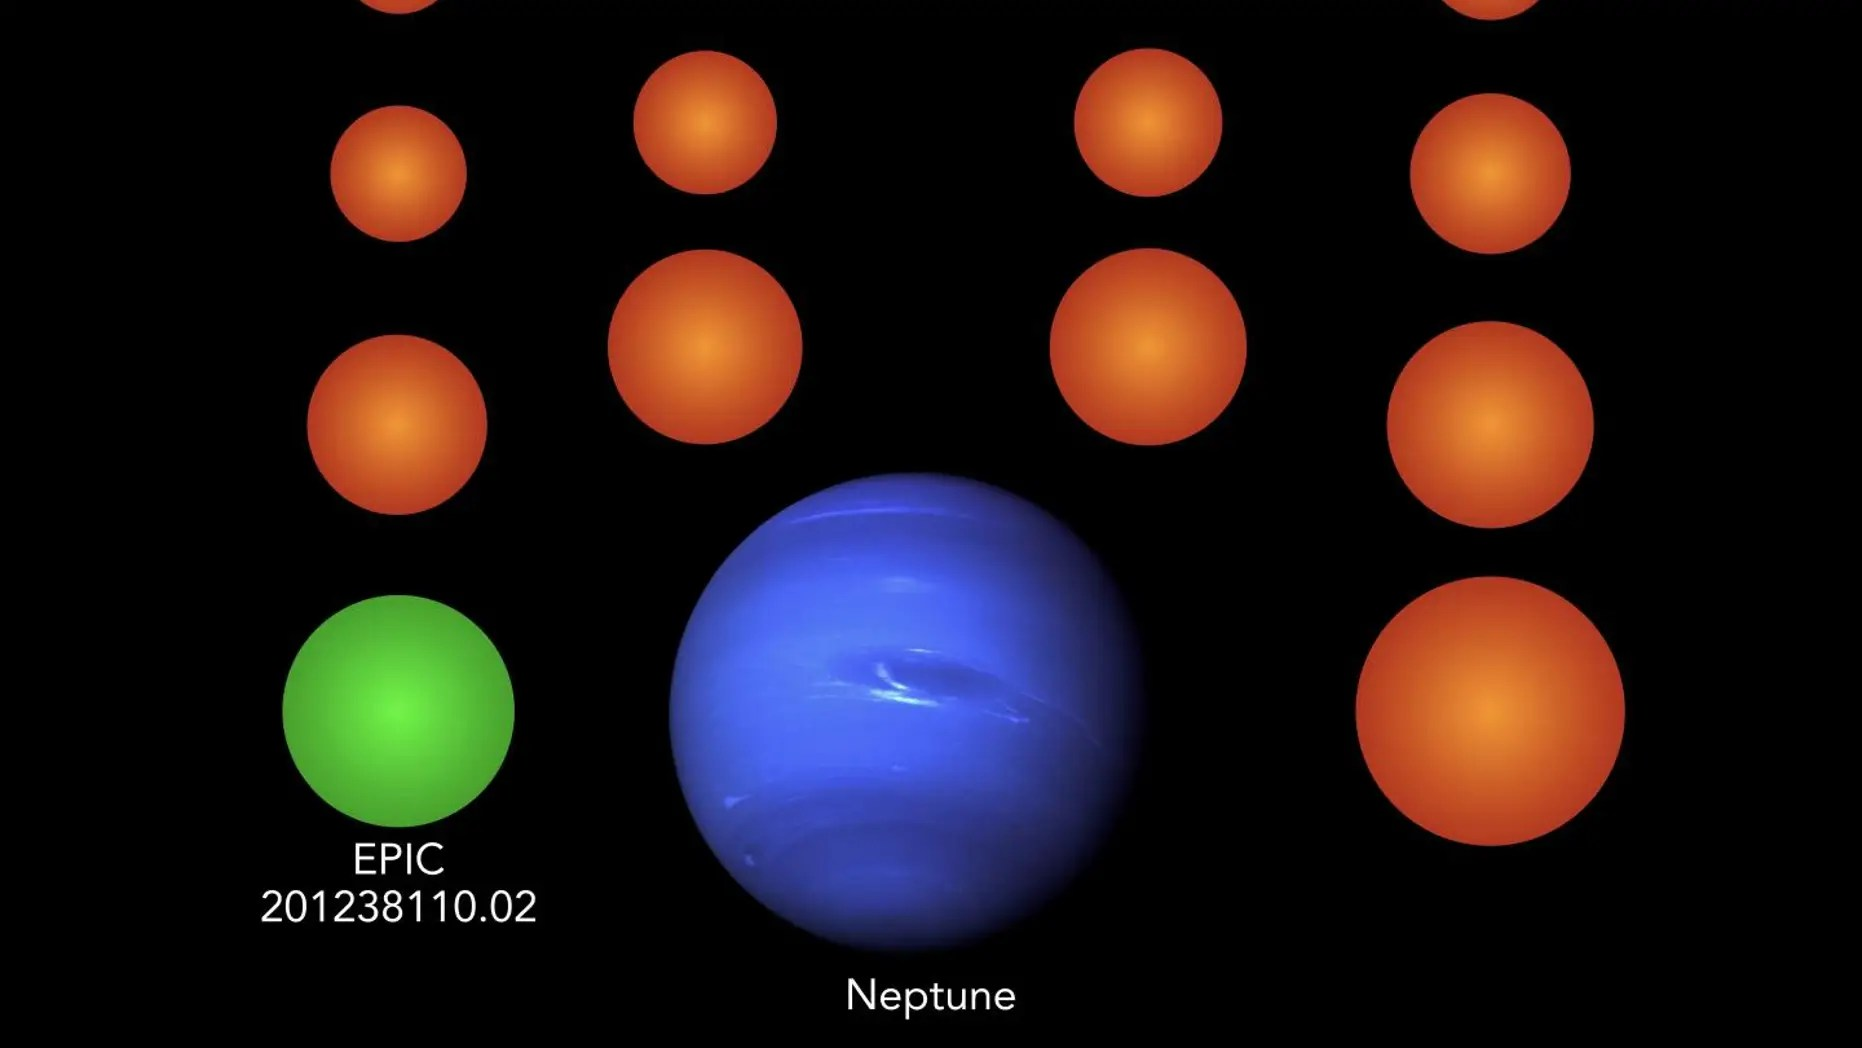 medium resolution of a diagram showing the sizes of the newly identified planets compared to earth and neptune